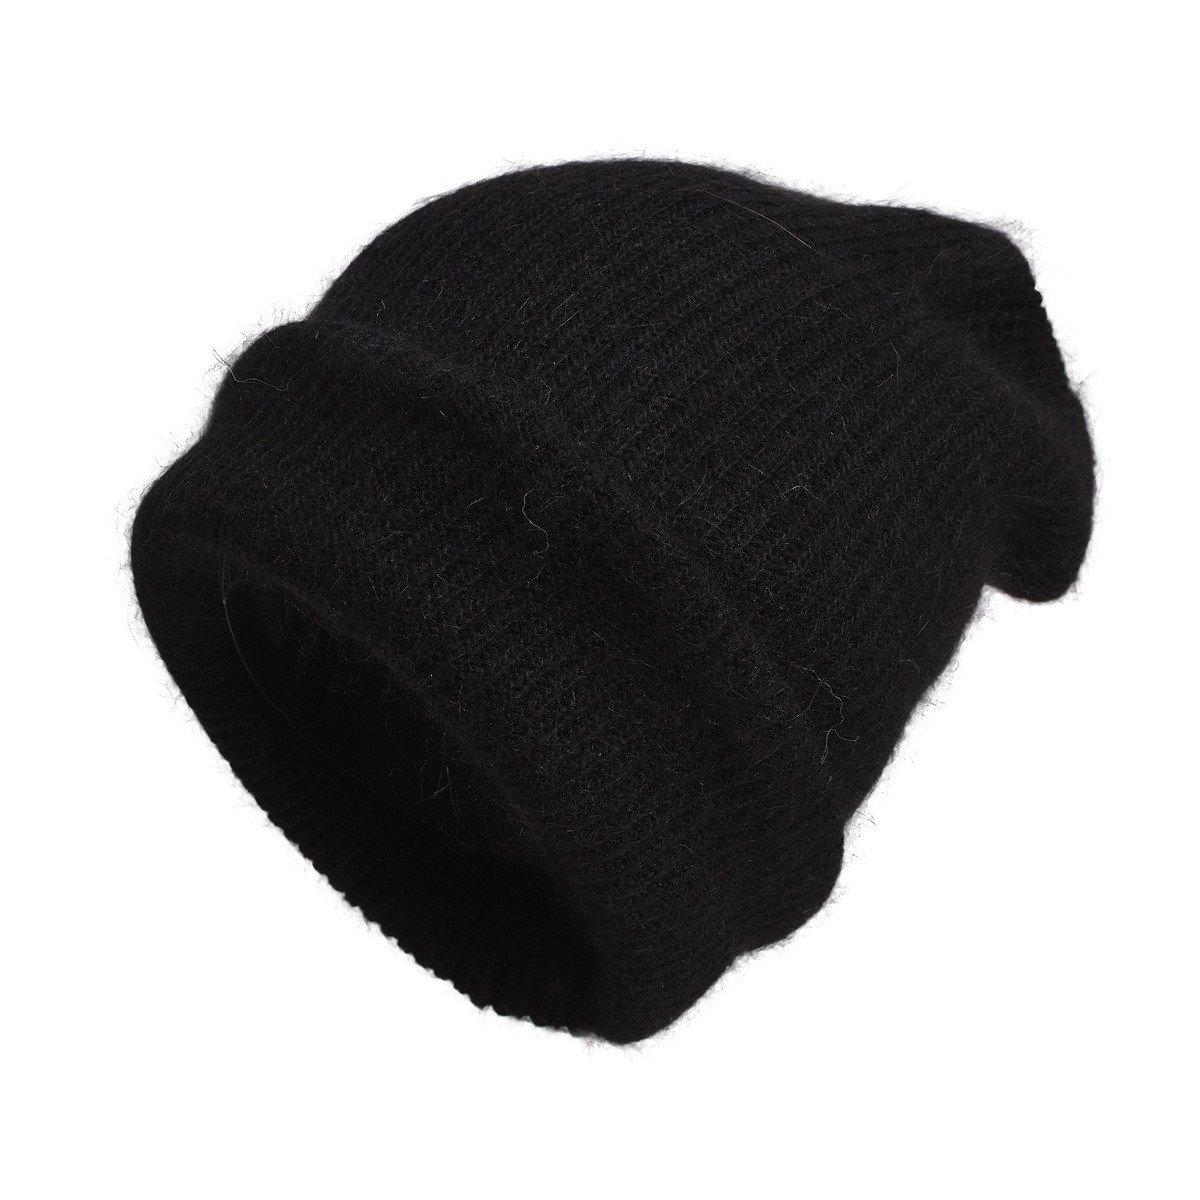 Lawliet Womens Cashmere Beanie Hat Ski Cap Slouchy Warm Winter Skull Y88  (Black) at Amazon Women s Clothing store  07c9f33784